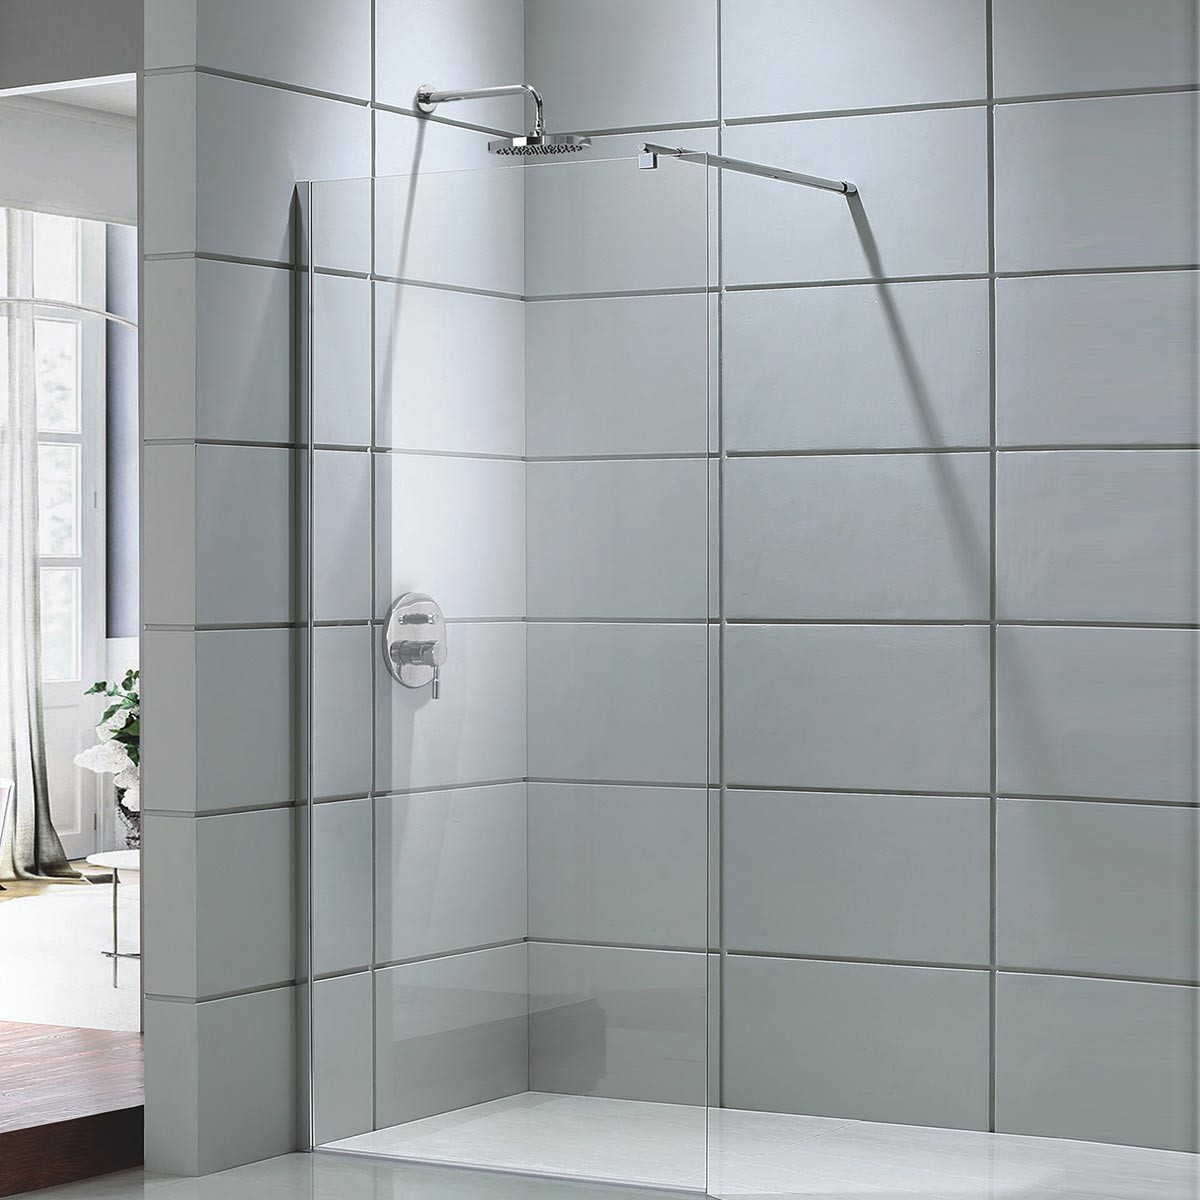 39 x 75 In. Walk-in Shower Door (DK-D201-100b)